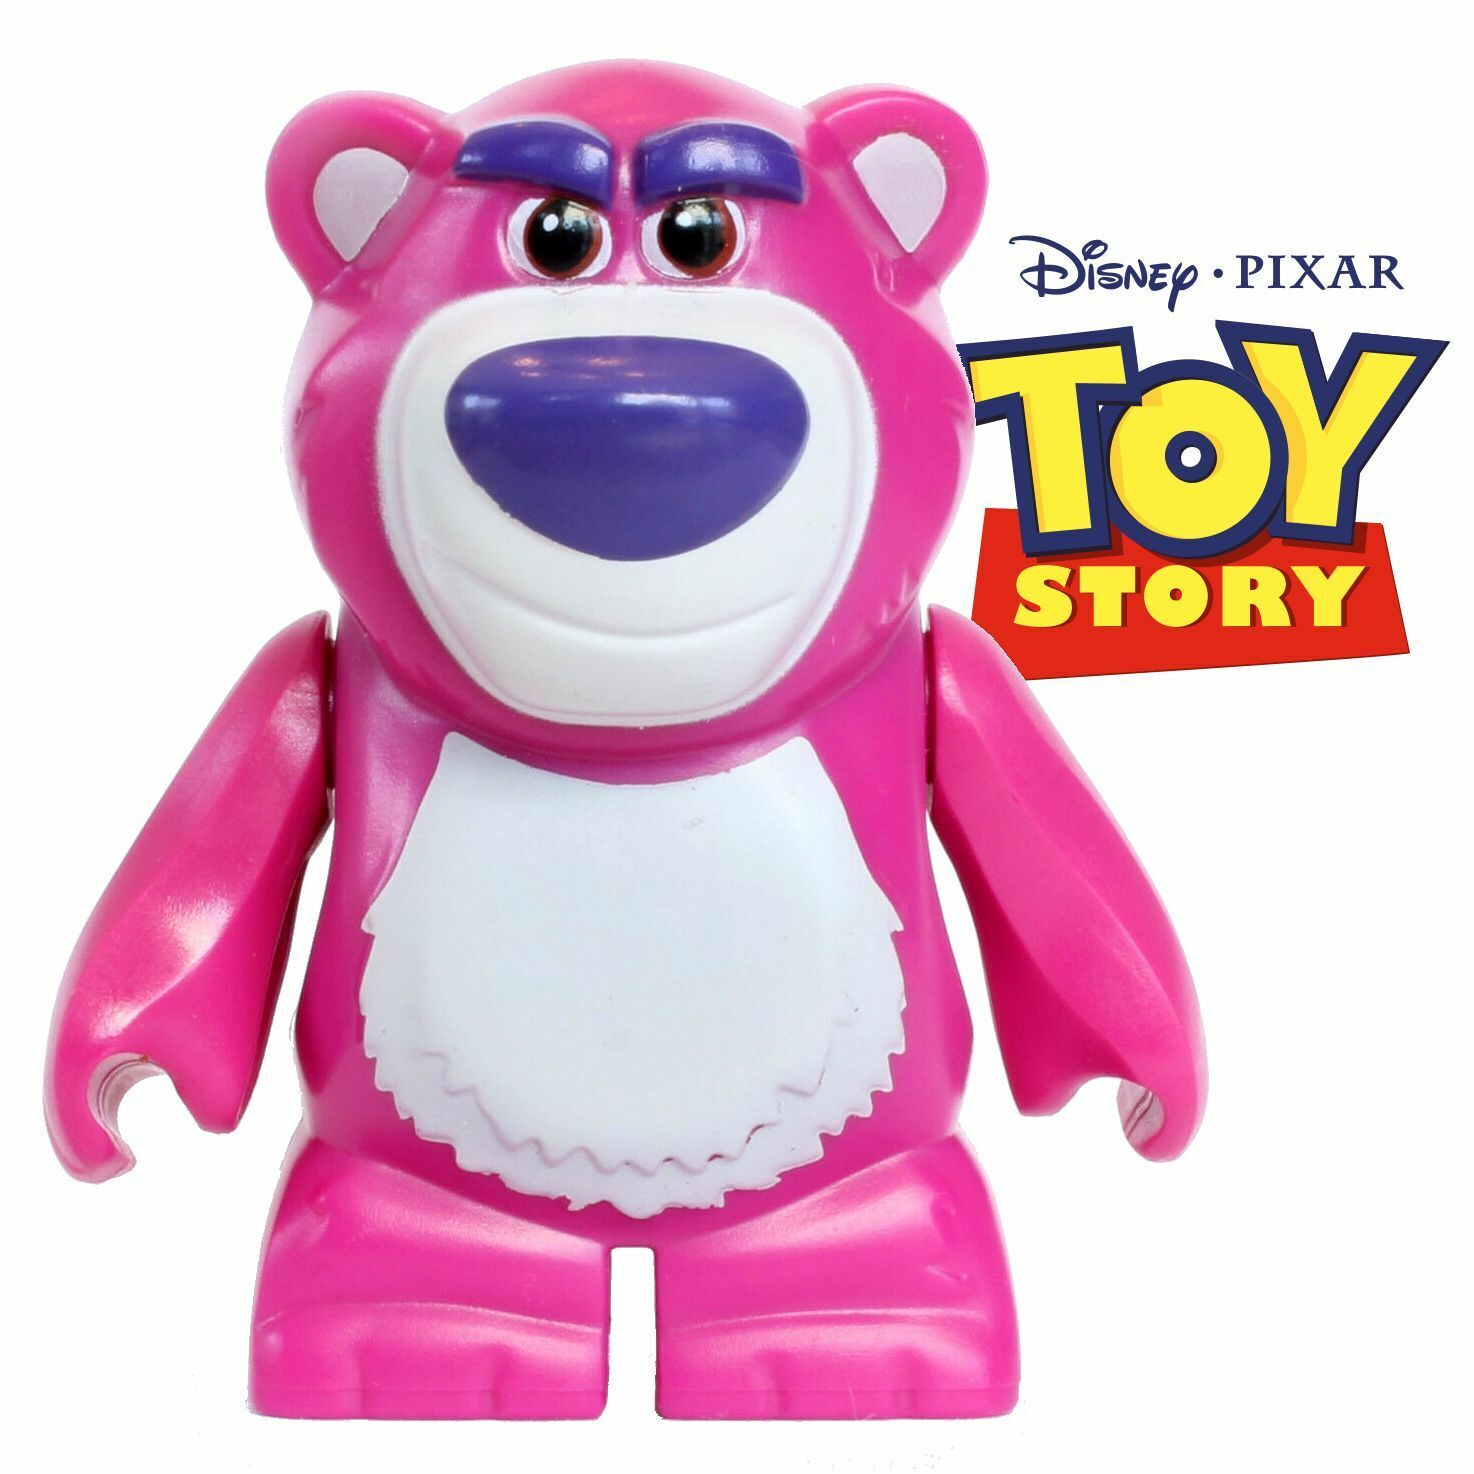 Pixar Toy Story 3 Exclusive 15 Inch Deluxe Plush Figure Lotso Lots O... Disney